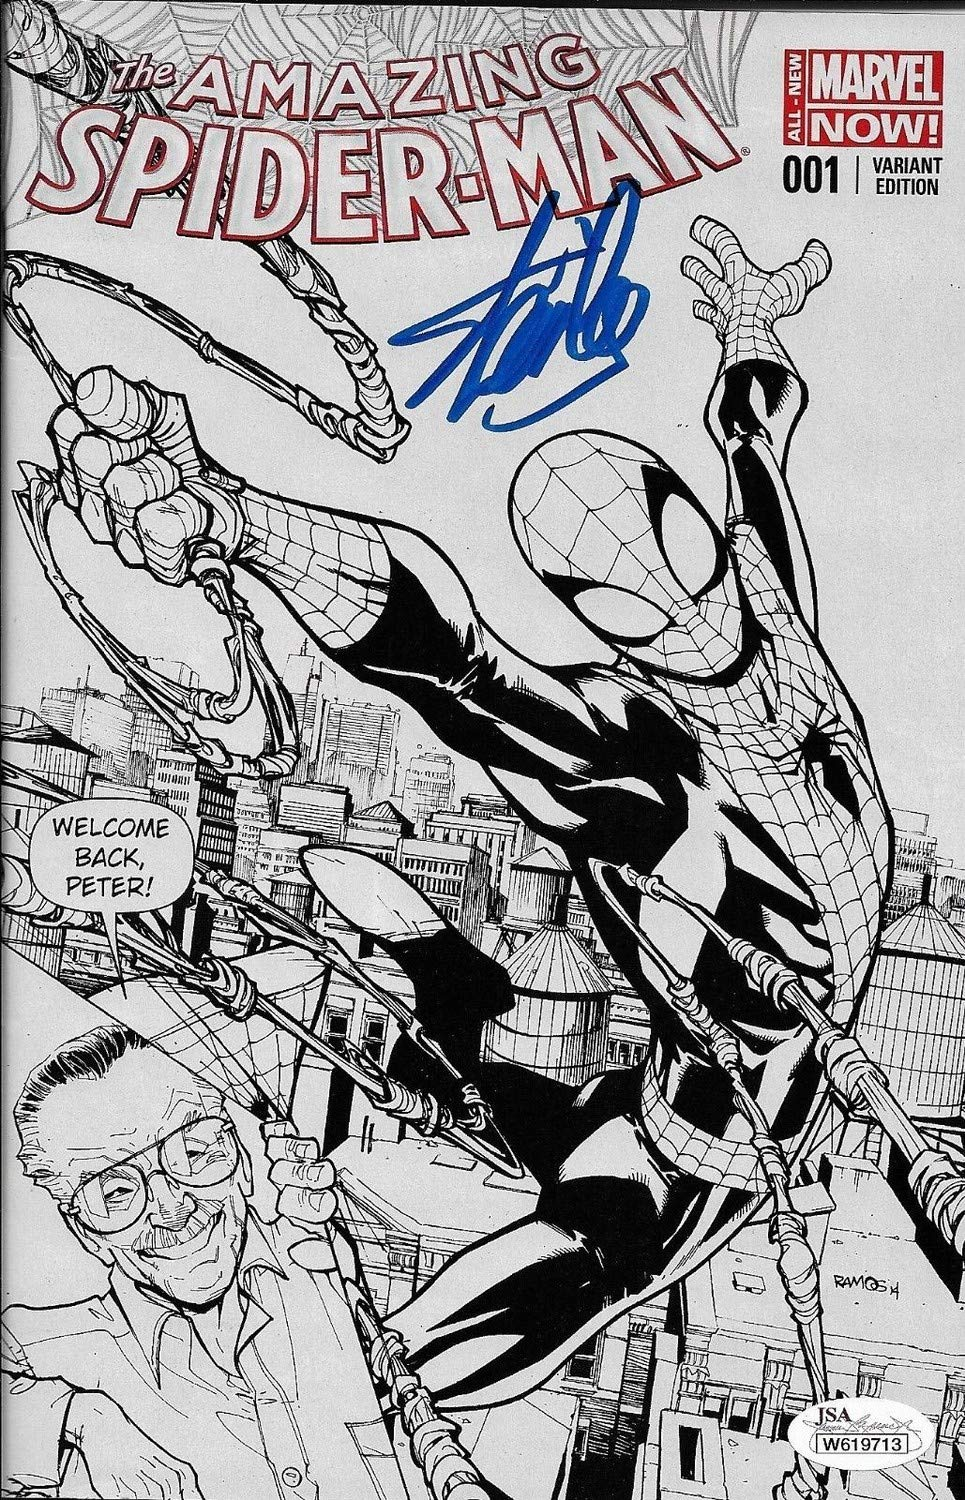 Stan Lee Autographed Signed Amazing Spider Man Variant Edition Comic Book JSA Authentic